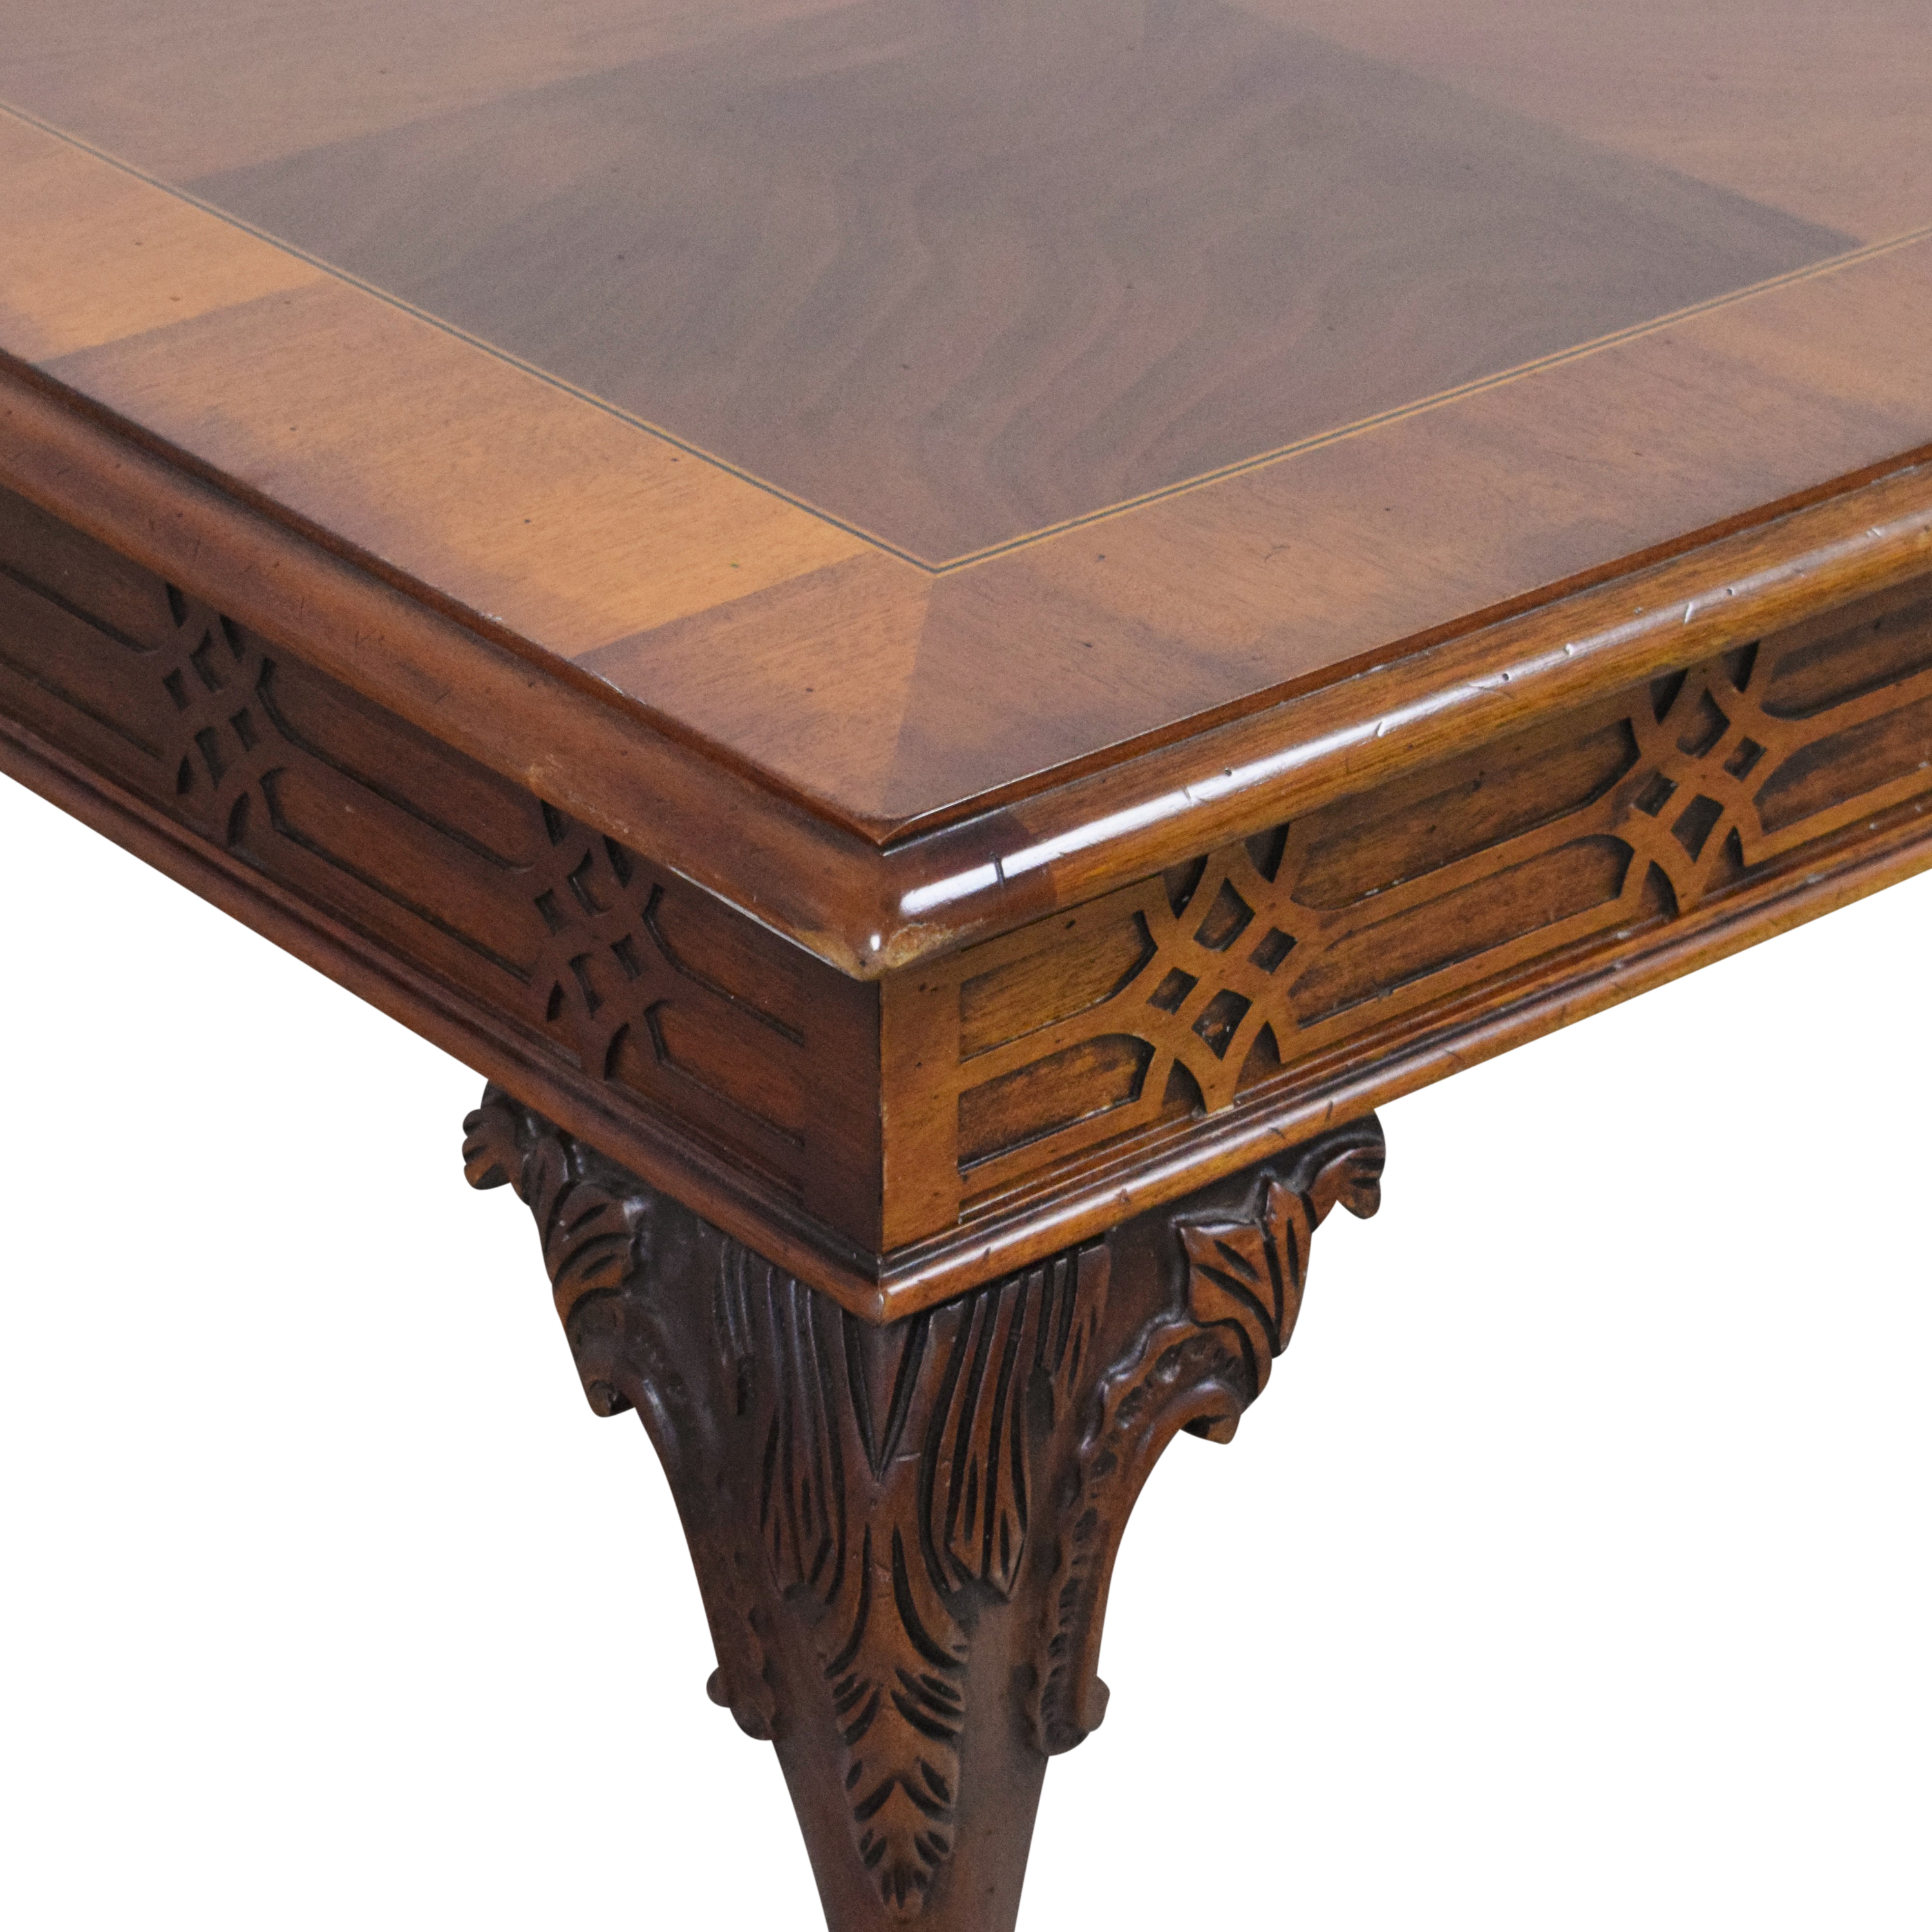 Square Parquet Coffee Table / Tables